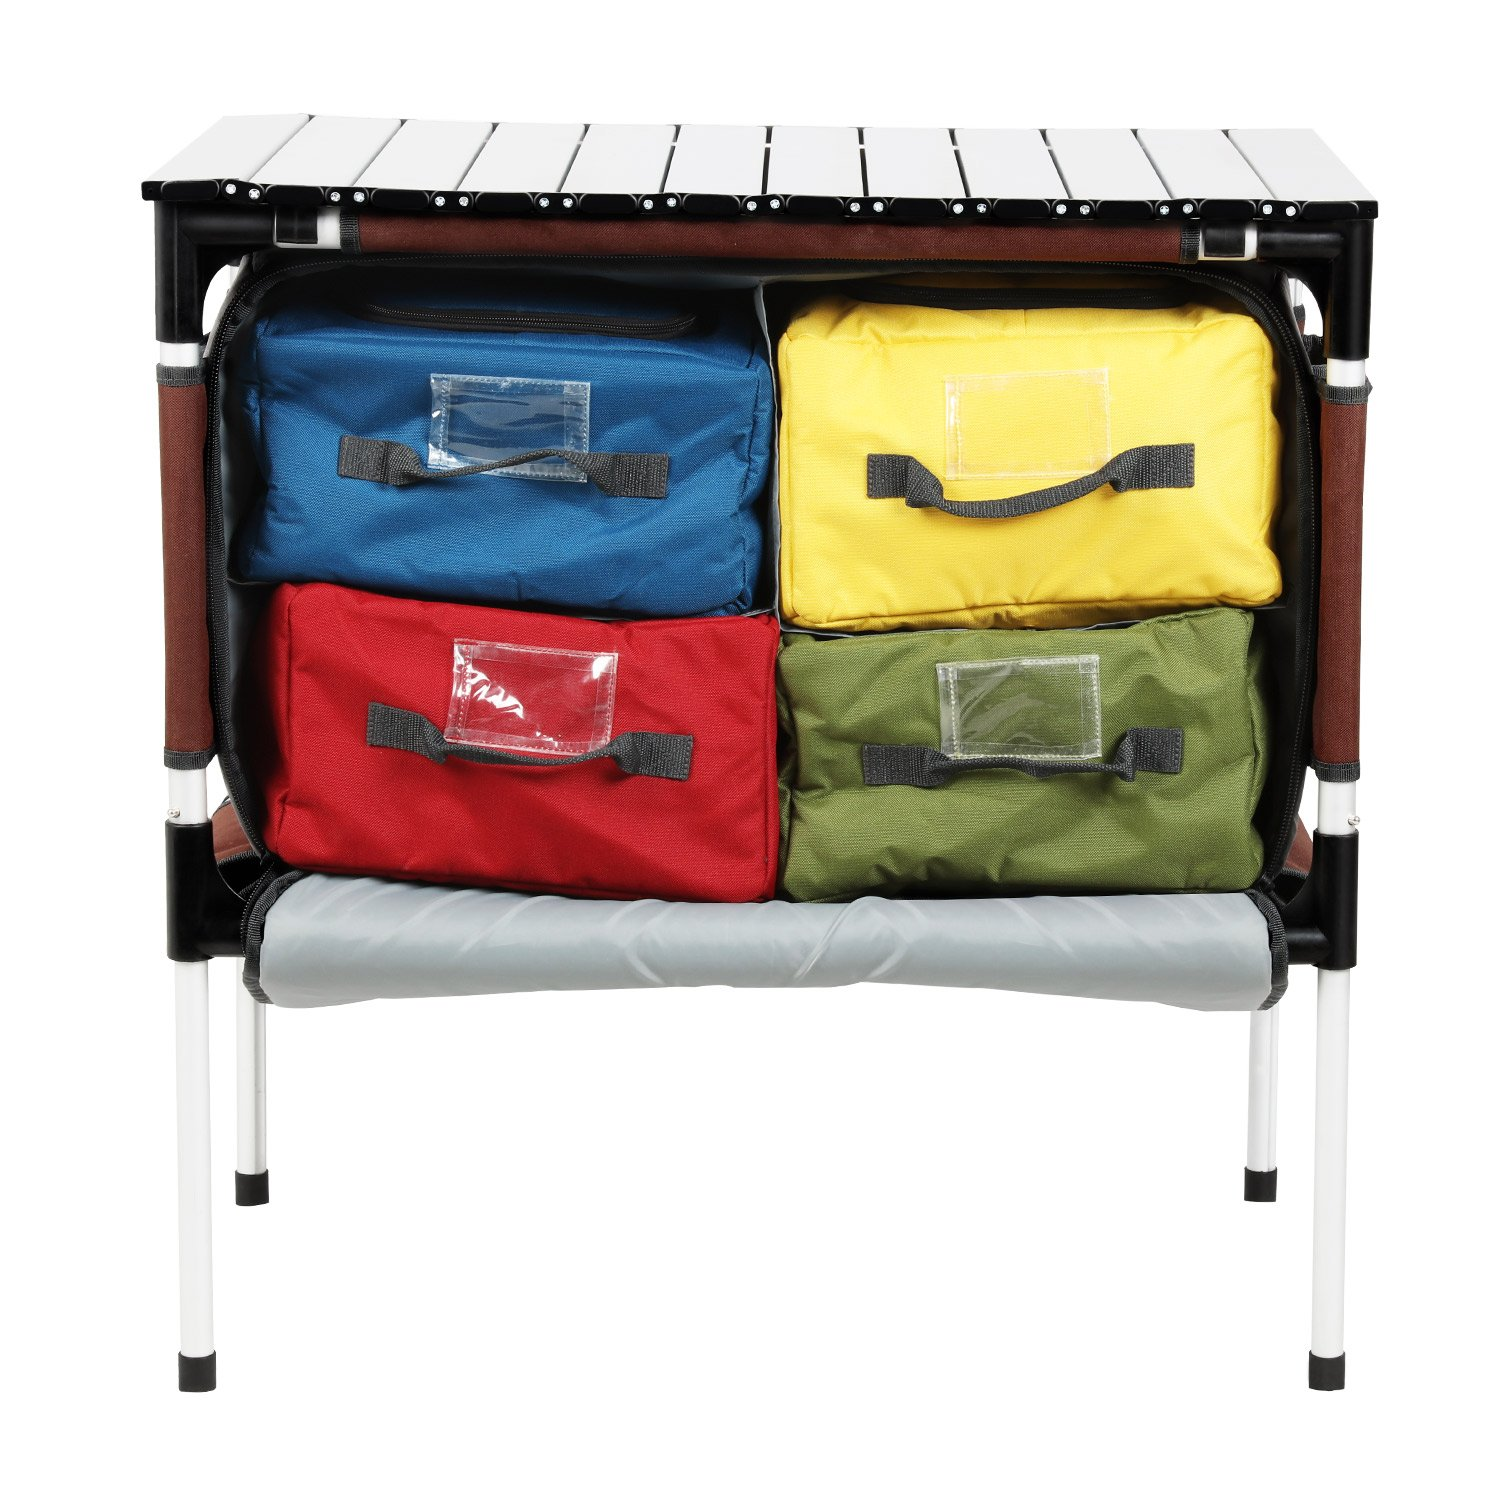 PORTAL Multifunctional Folding Camp Table Aluminum Lightweight Picnic Organizer with Large Zippered Compartment Contains Four Cooler Storage Bags for BBQ, Party, Camping, Kitchen by PORTAL